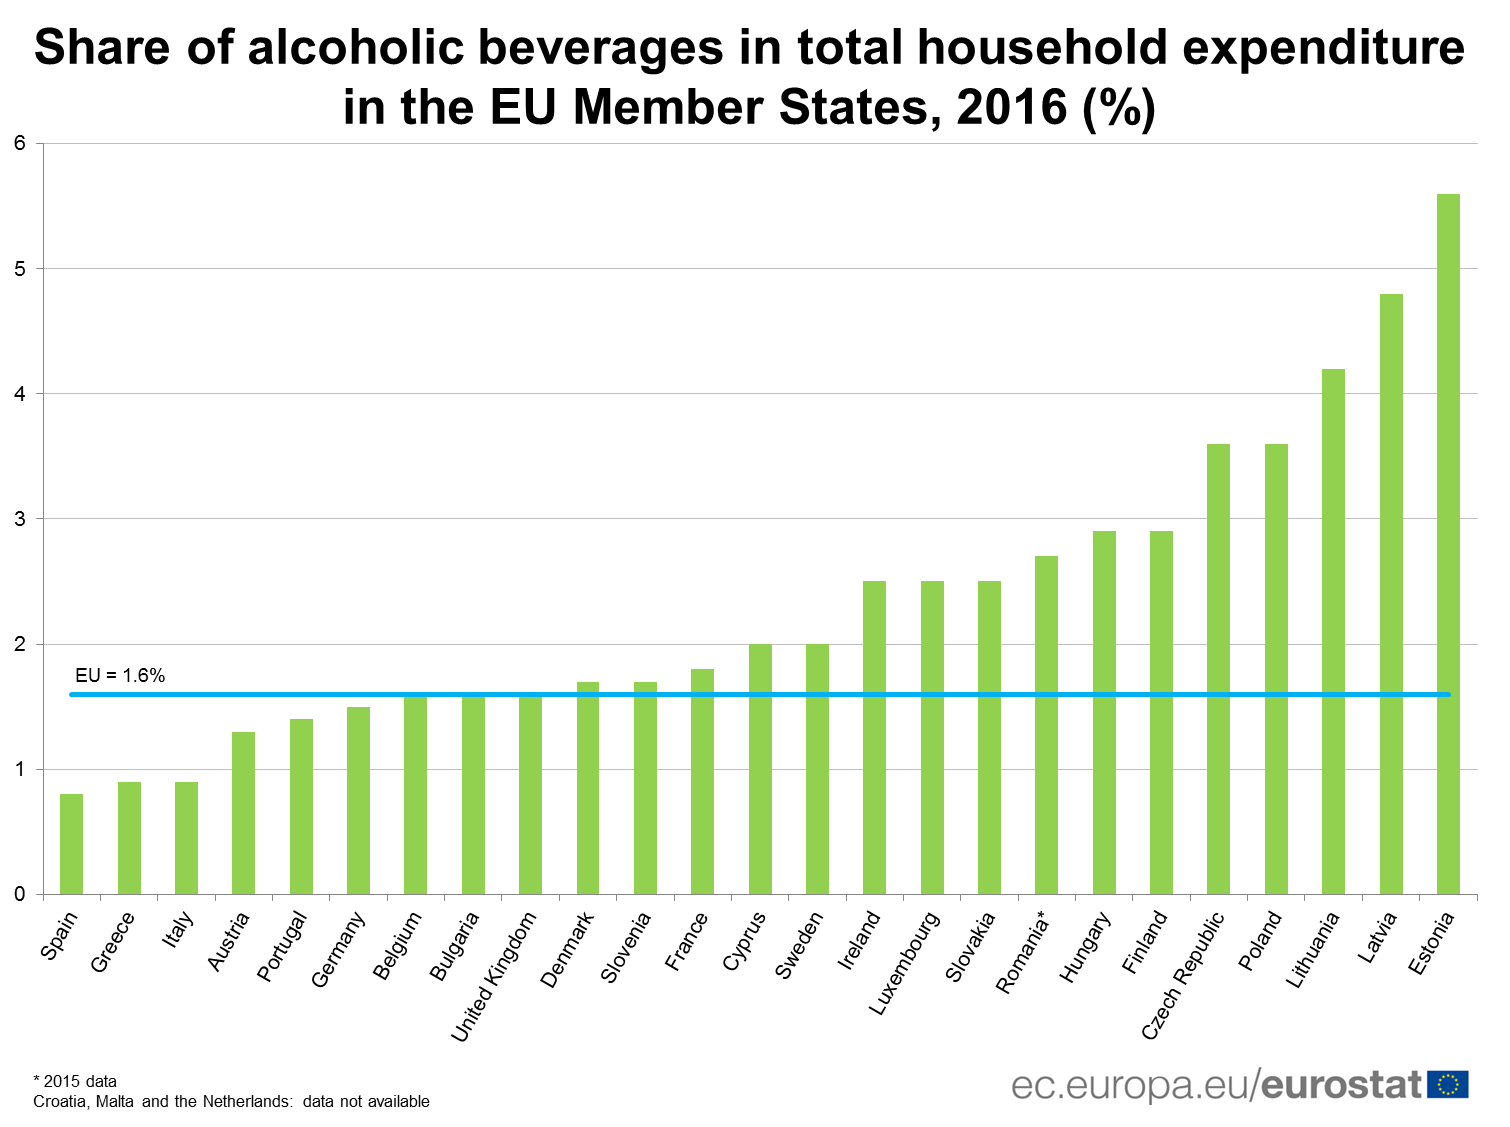 Share of alcoholic beverages in total household expenditure in the EU Member States, 2016 (in %)